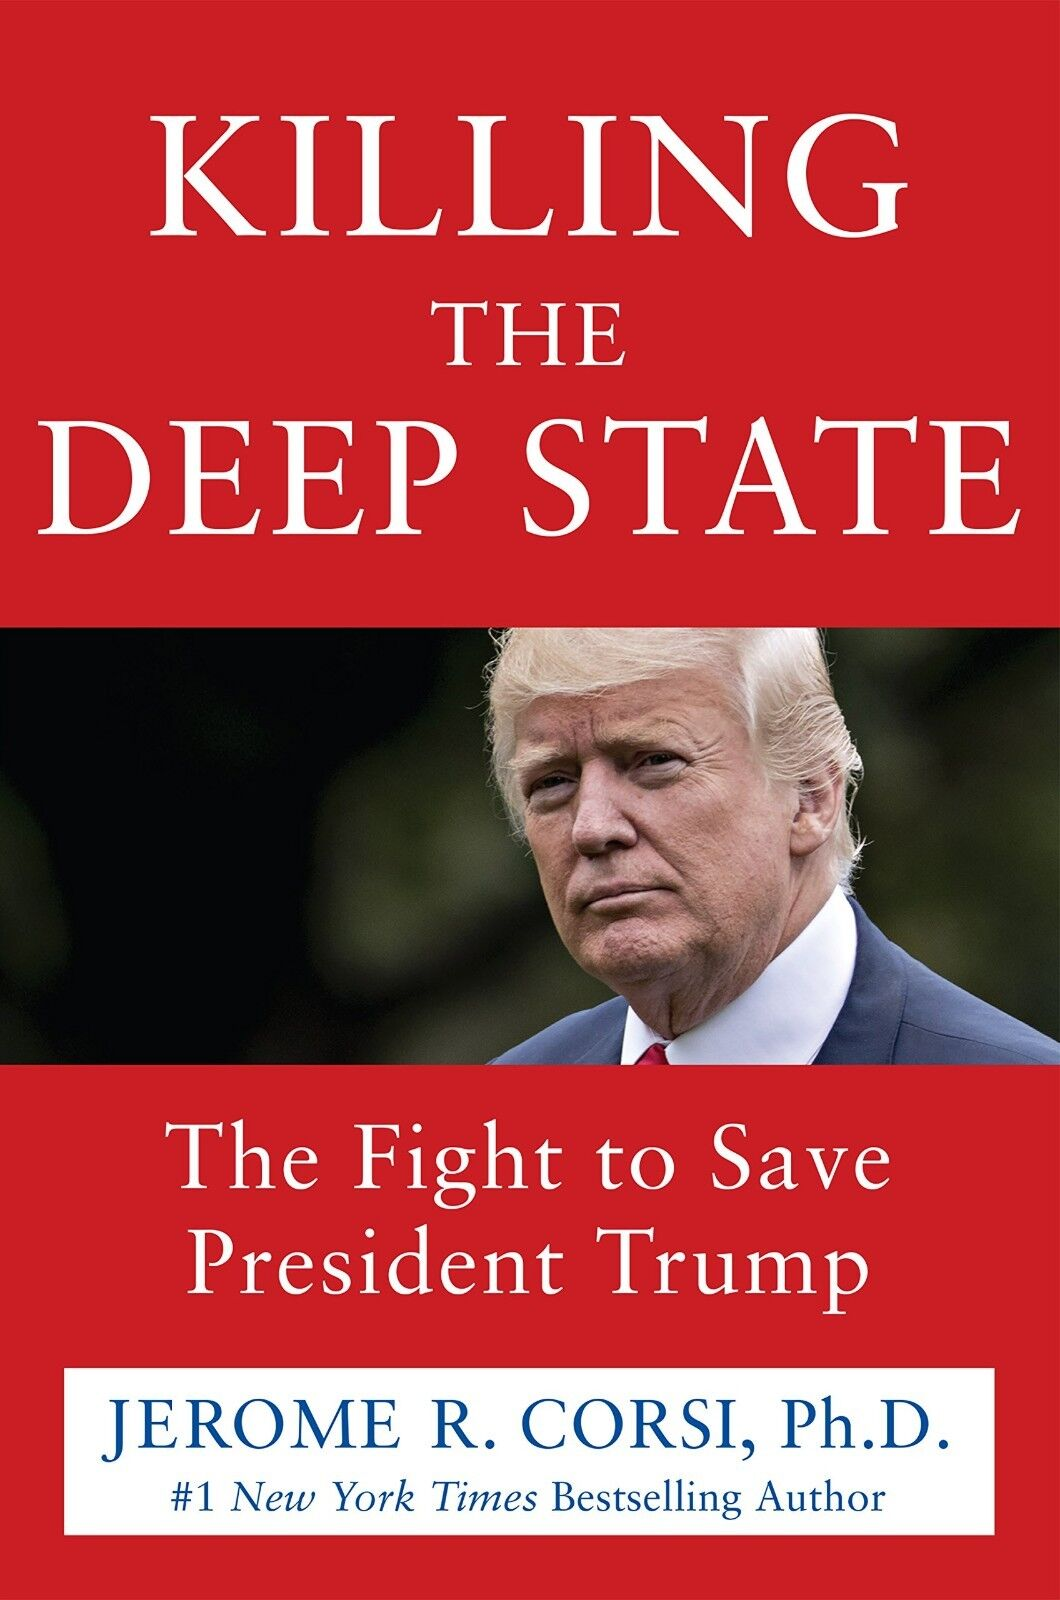 Killing The Deep State The Fight To Save By Jerome R. Corsi Ph.D. [Hardcover]